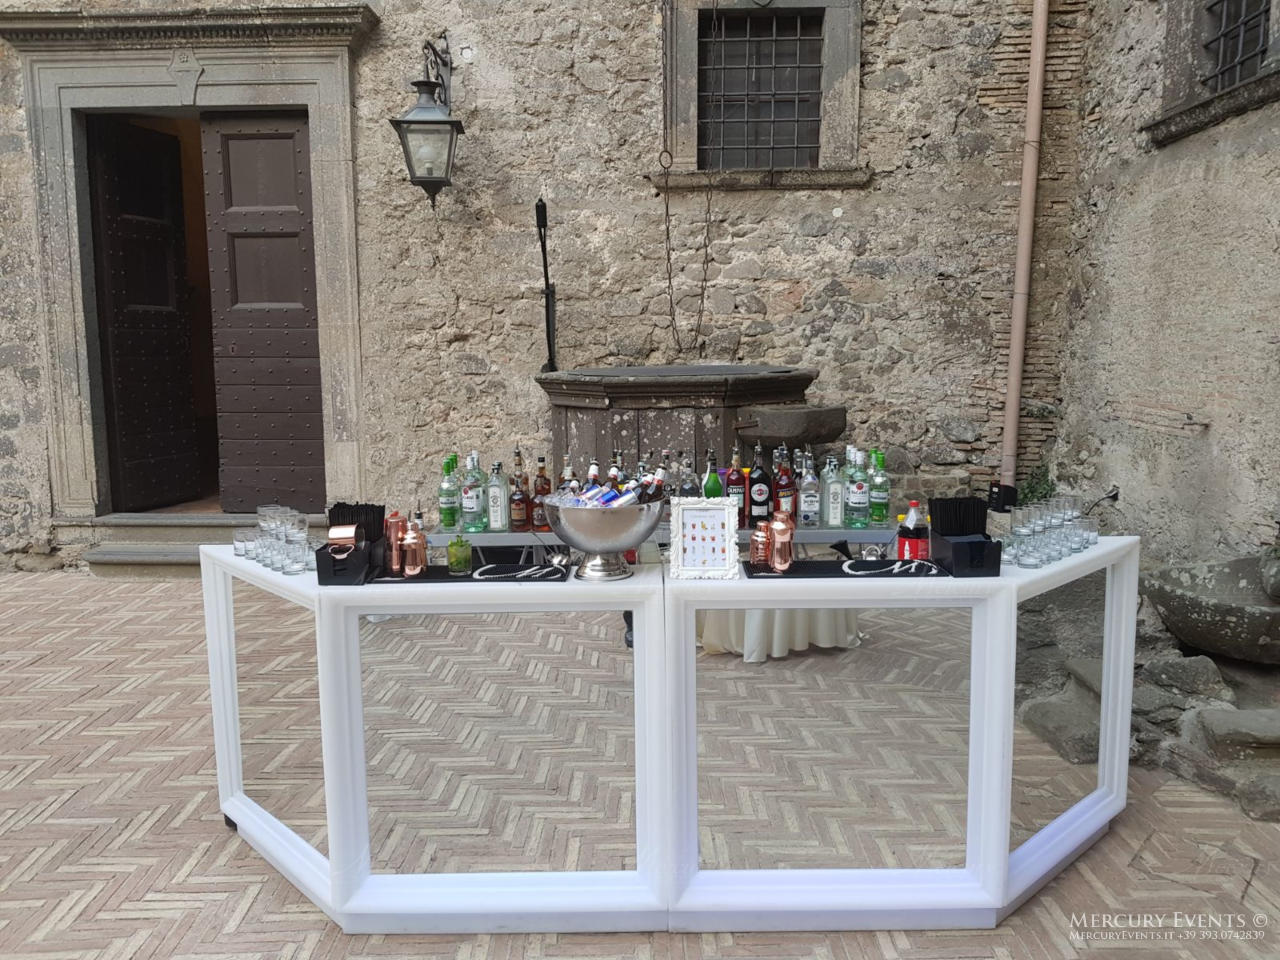 Wedding - Castello Odelschalchi di Bracciano - Mercury Events 13